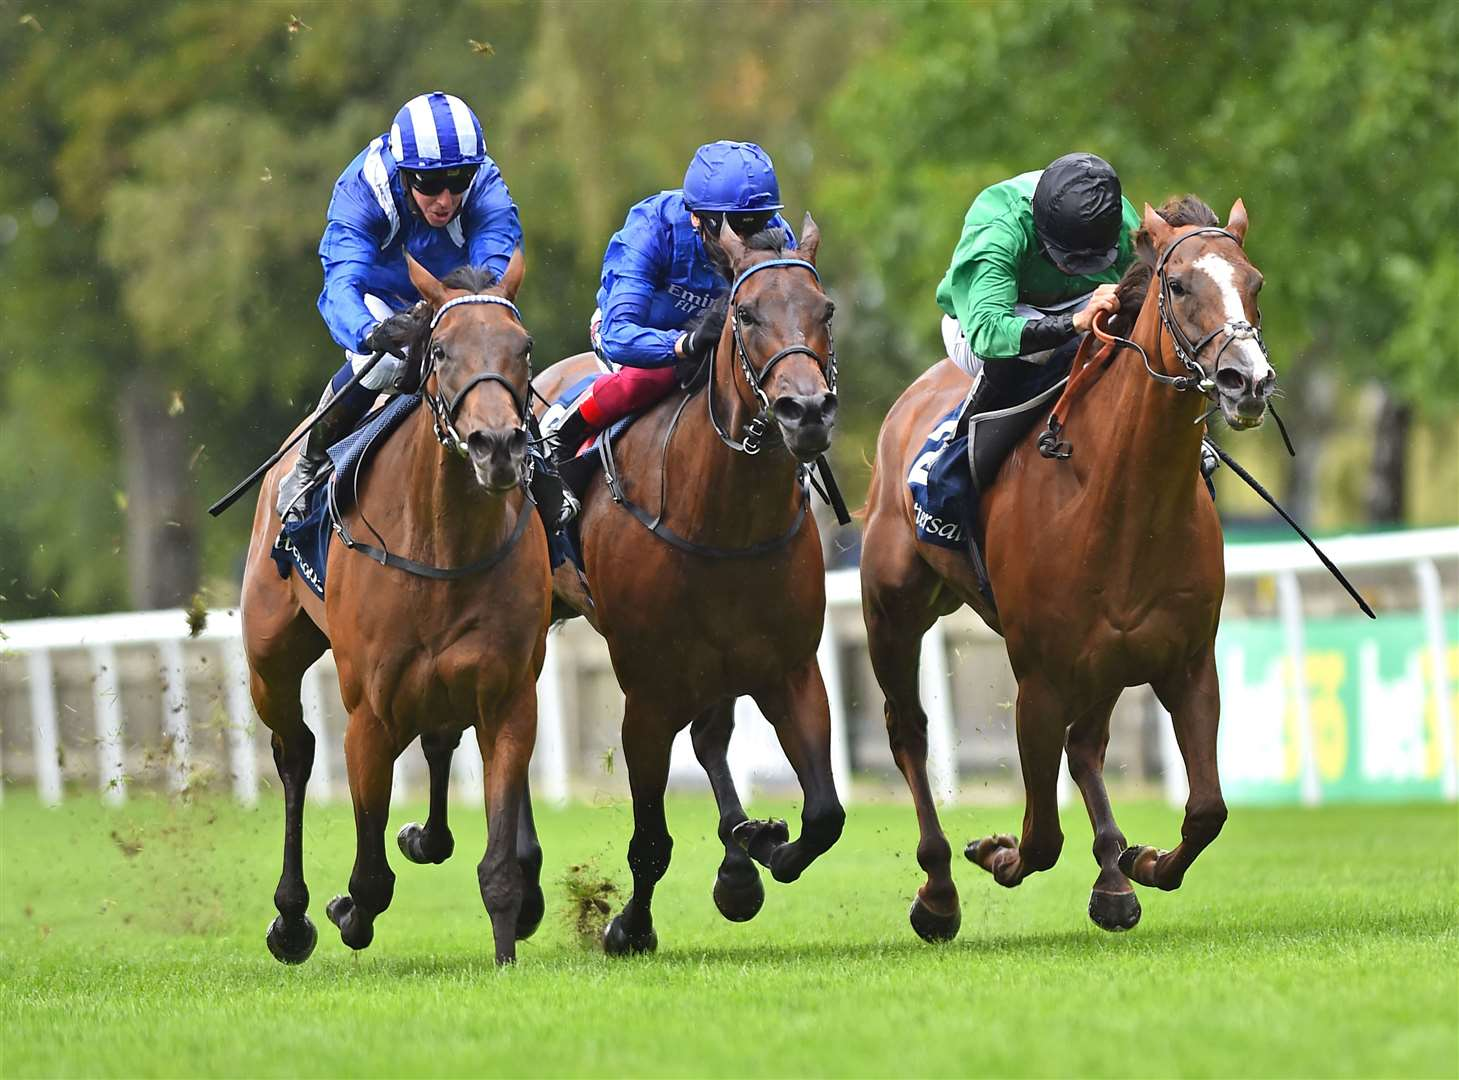 (L) Nazeef (Jim Crowley) wins The Tattersalls Flamouth Stakes from (R) Billesdon Brook (Sean Levey) and (C) Terebellum (Frankie Dettori).. (38281725)